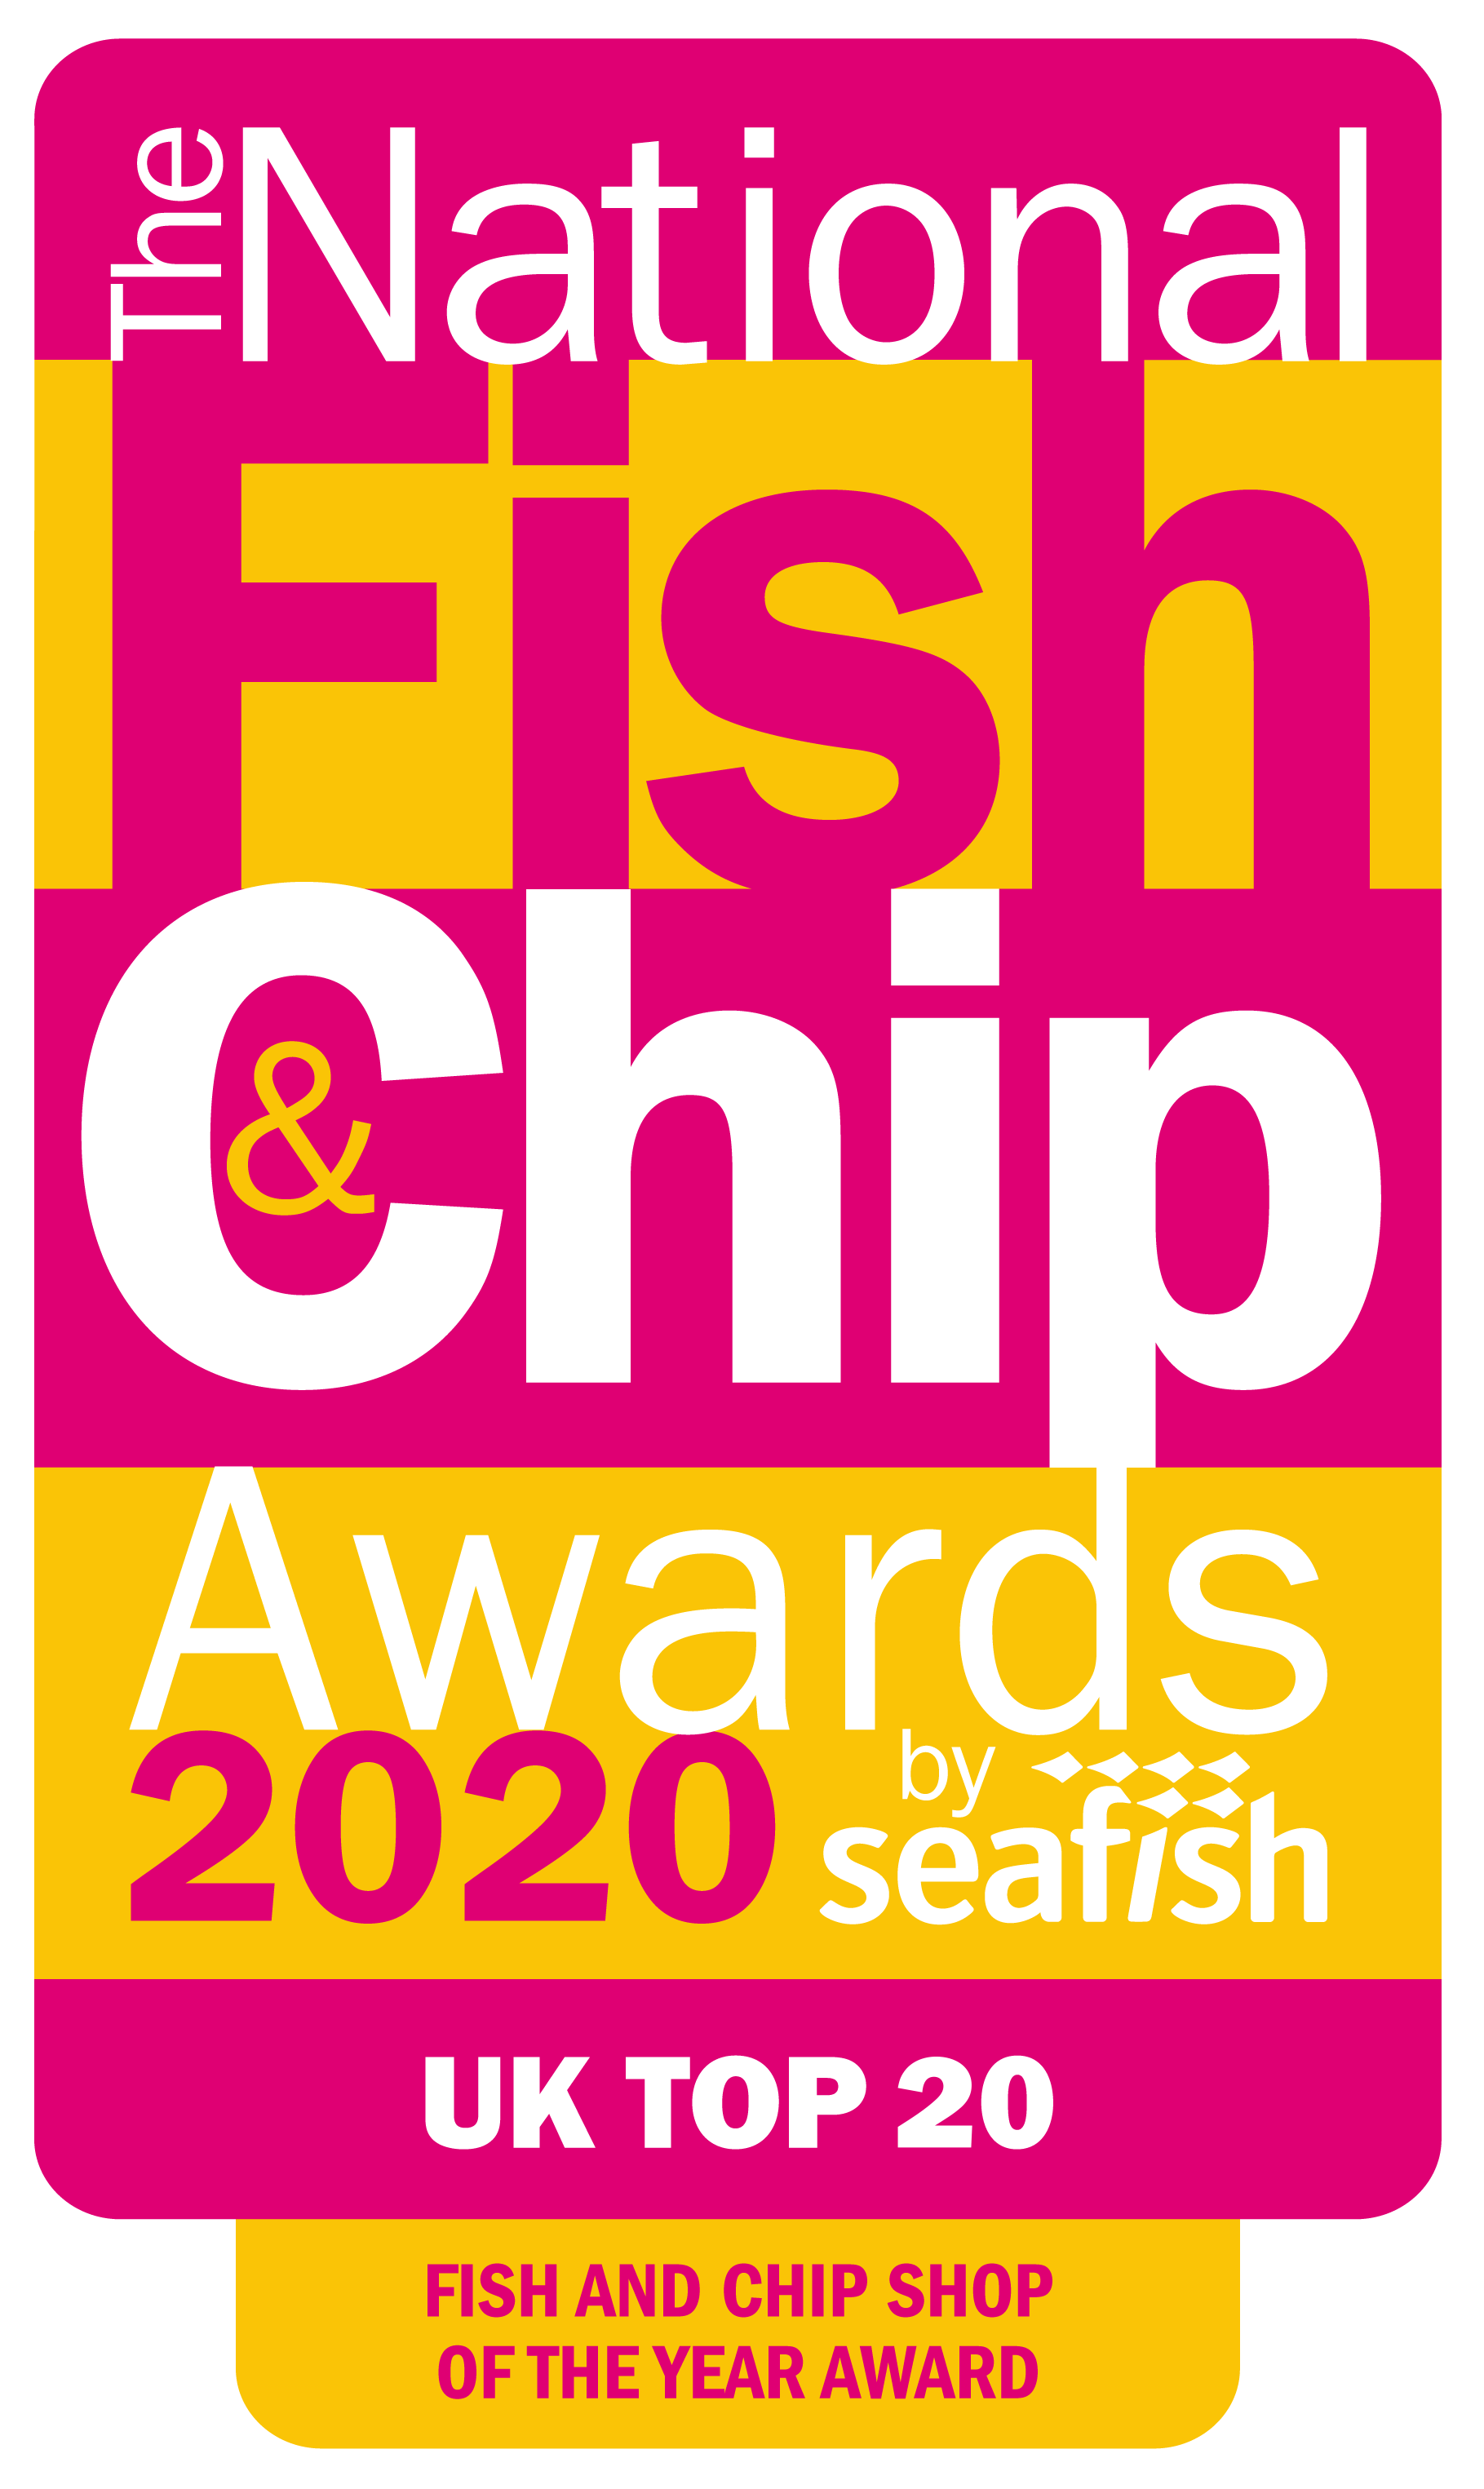 NFCA20 Top 20 Logo - Fish and Chip Shop of the Year Award